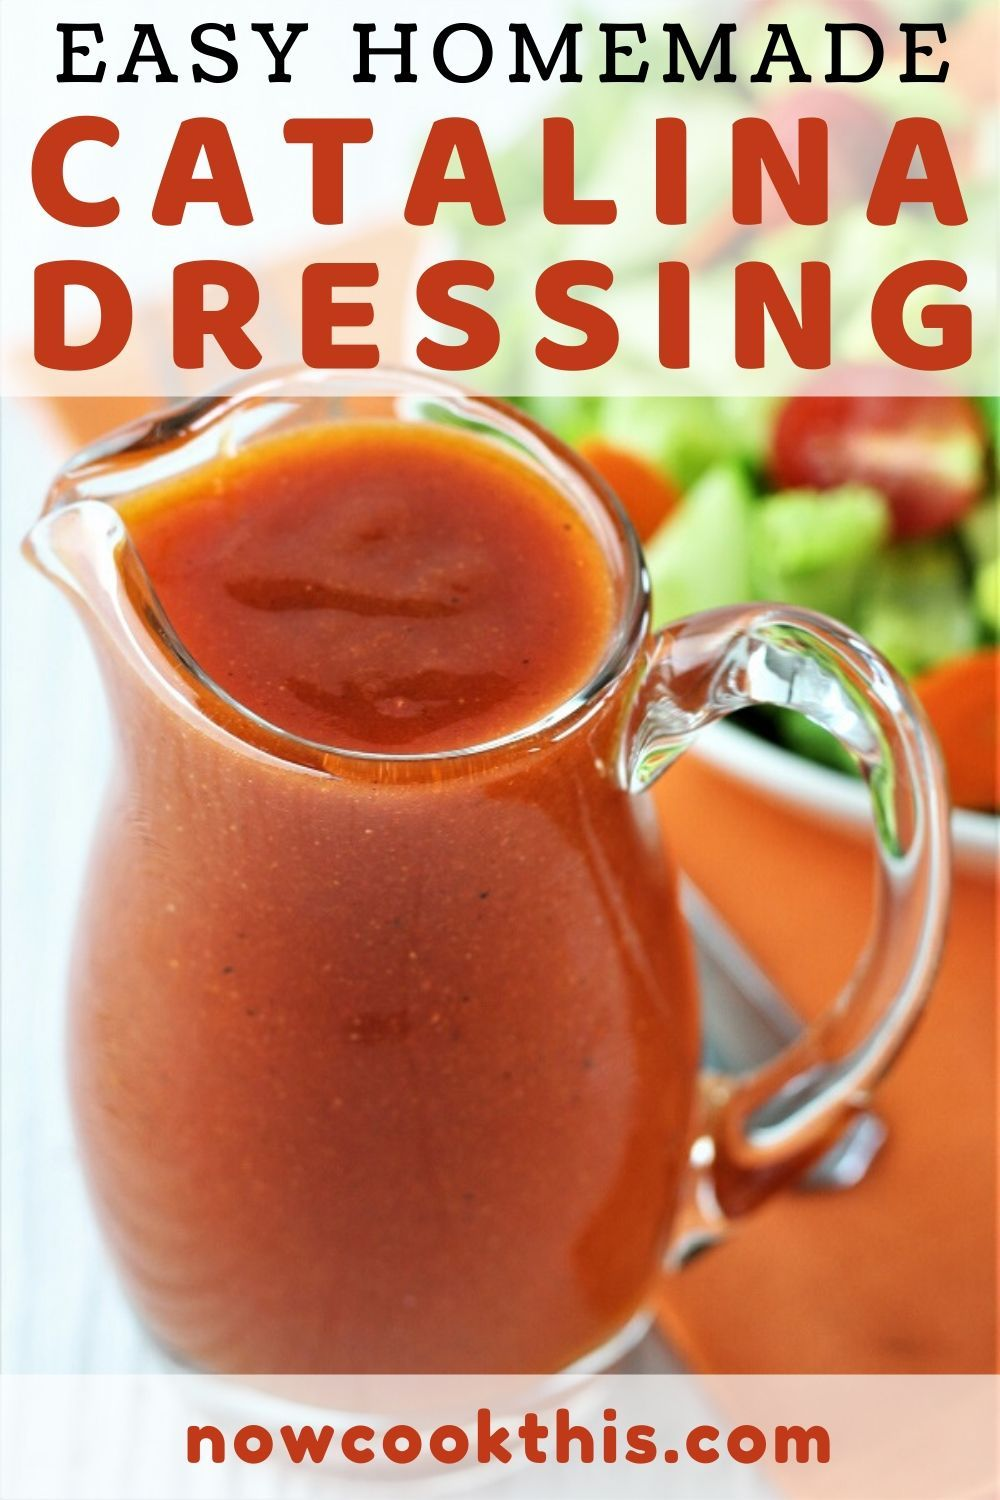 Easy Homemade Catalina Dressing Now Cook This In 2020 Catalina Dressing Recipes Homemade Salad Dressing Homemade Spices